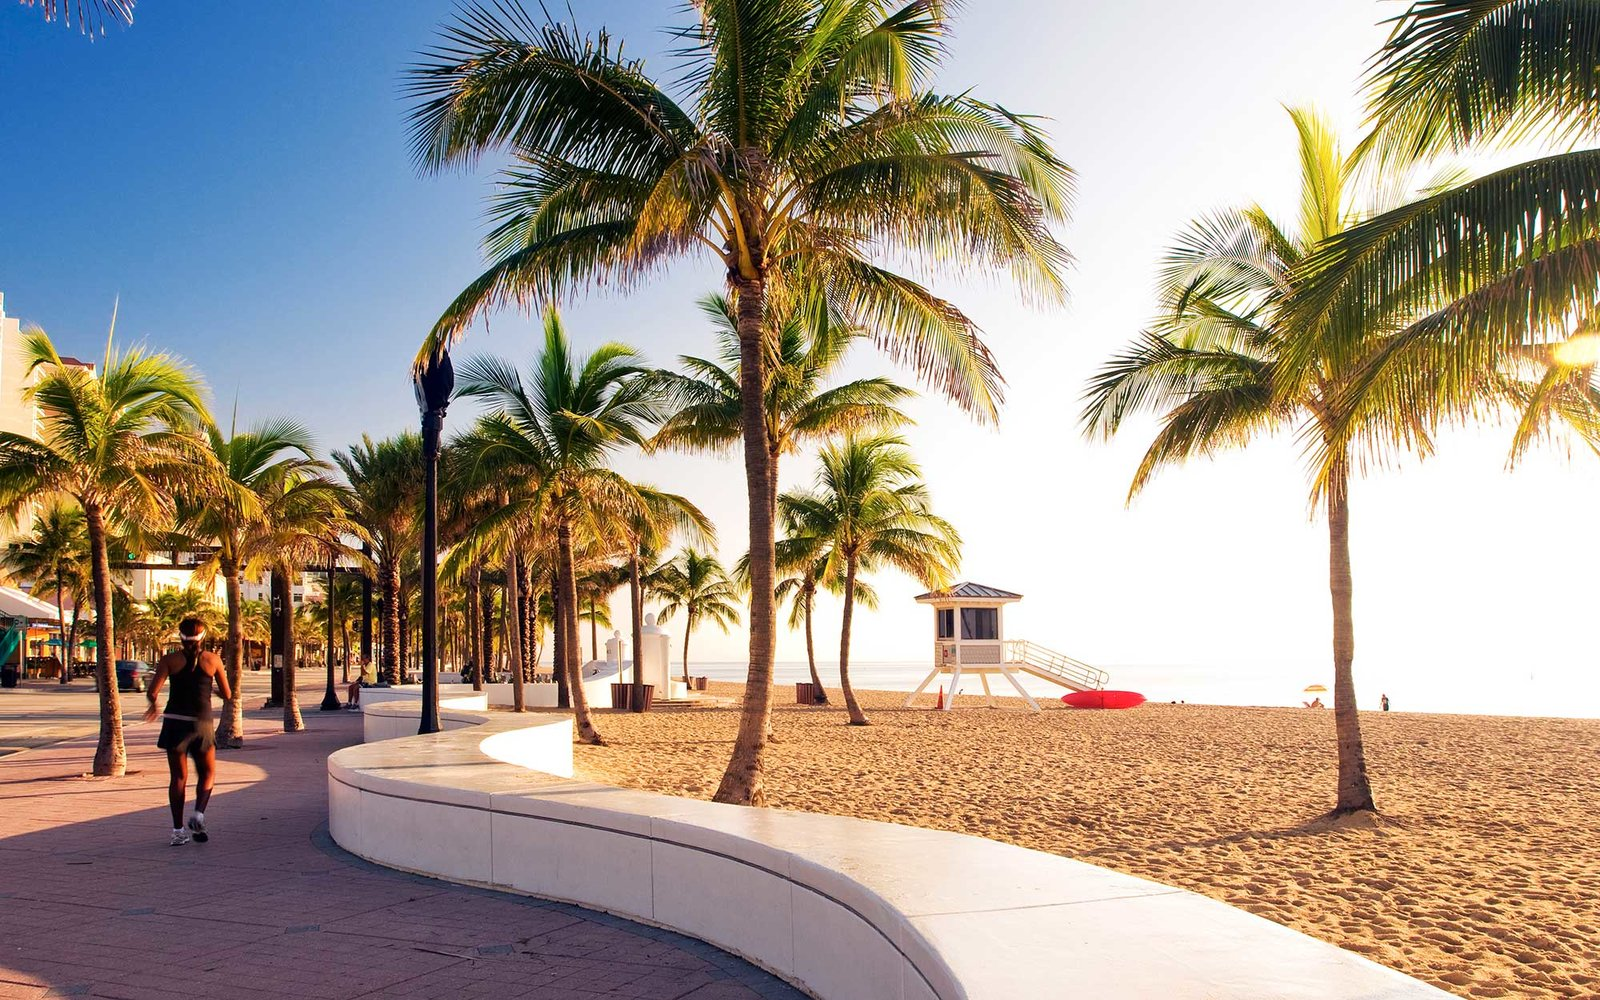 Beach, Fort Lauderdale, Florida, USA